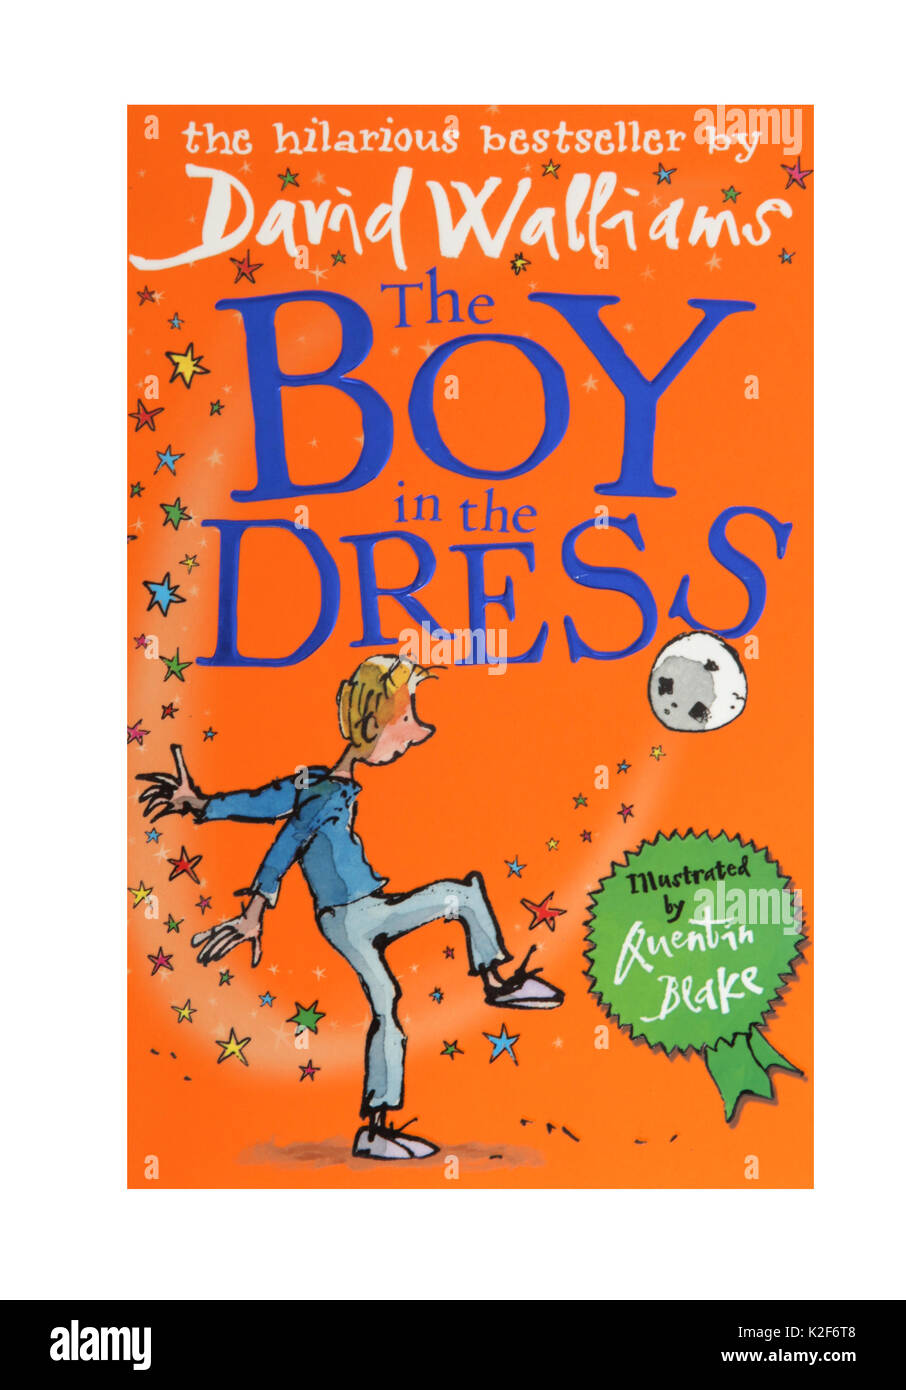 The book, The Boy in the Dress by David Walliams - Stock Image